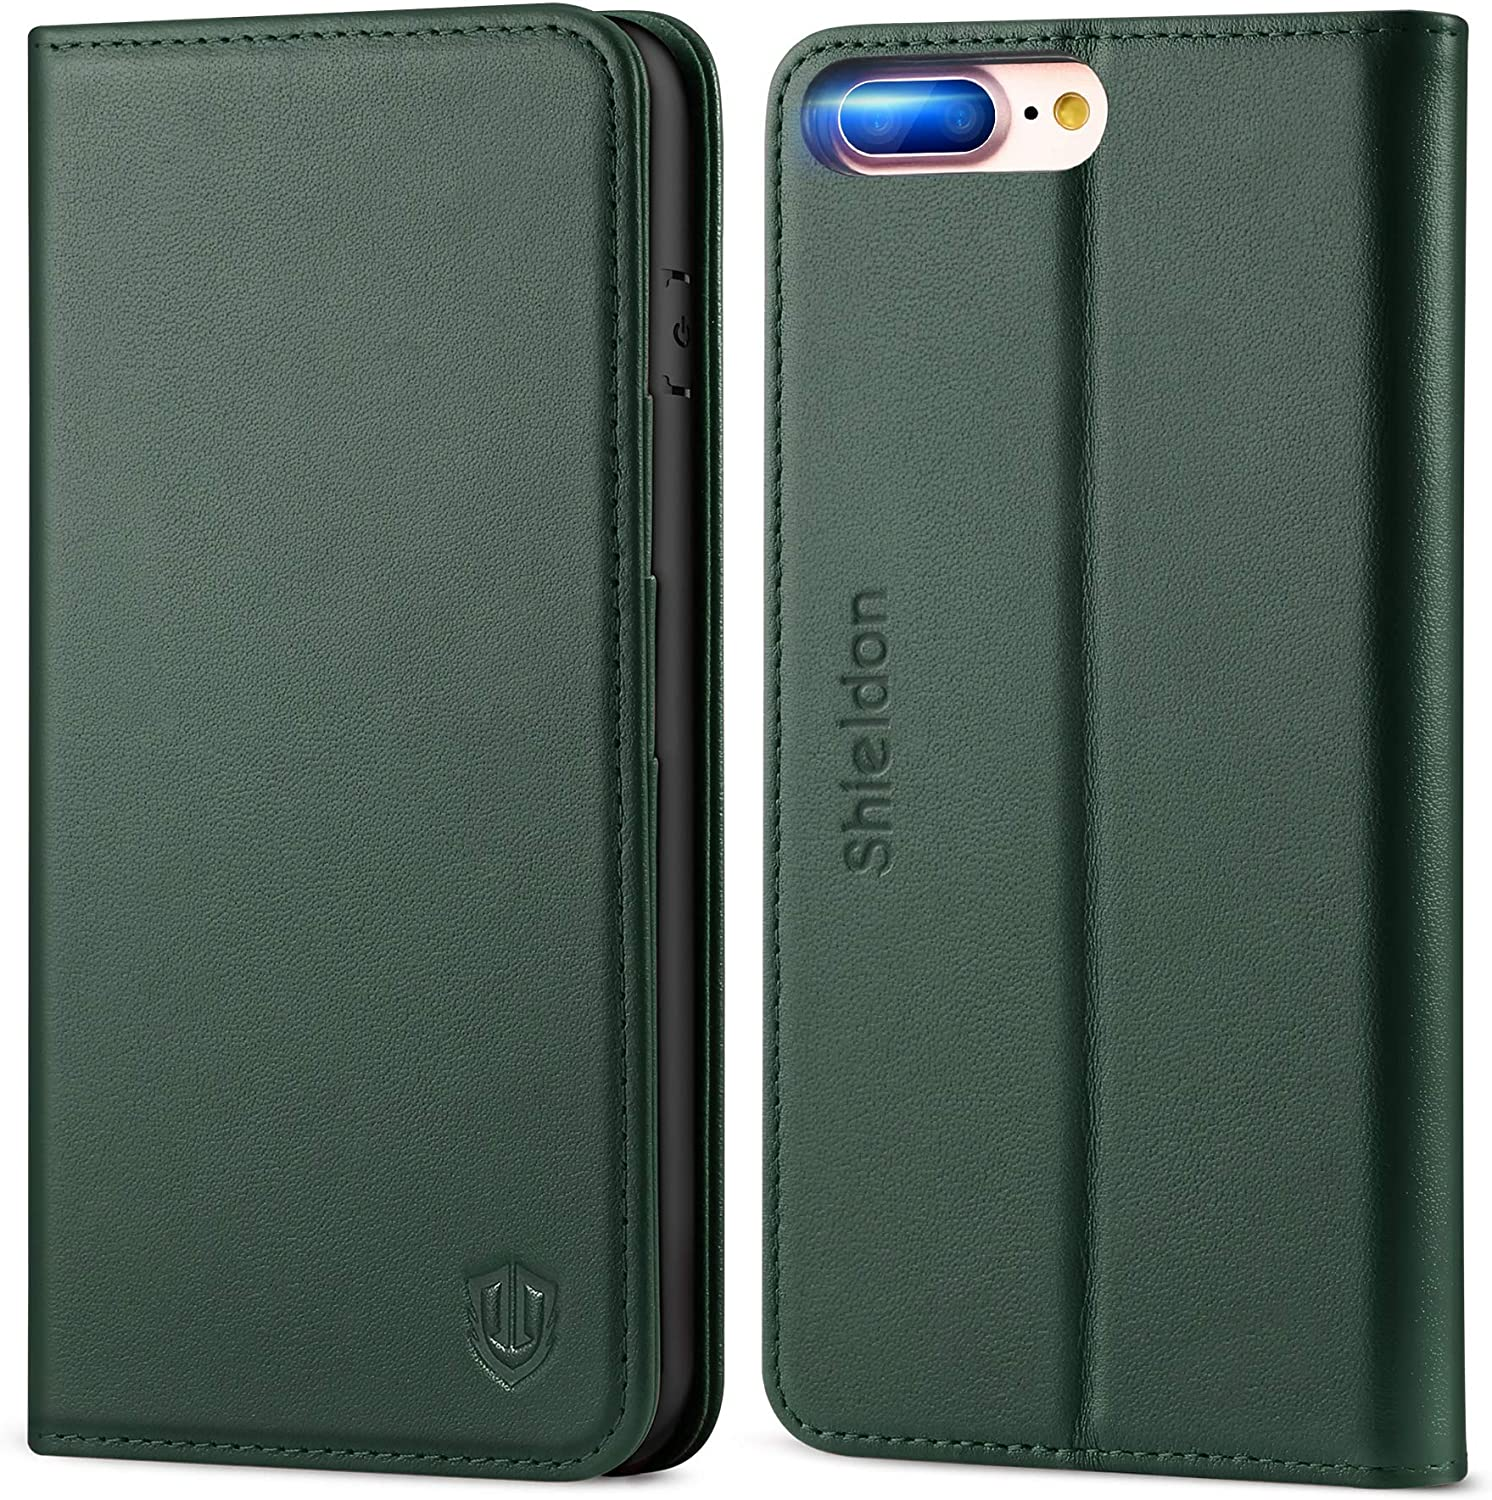 SHIELDON iPhone 8 Plus Case, iPhone 8 Plus Wallet Case, Genuine Leather iPhone 7 Plus Flip Magnetic Cover Card Slots Kickstand Shockproof Case Compatible with iPhone 8 Plus (5.5